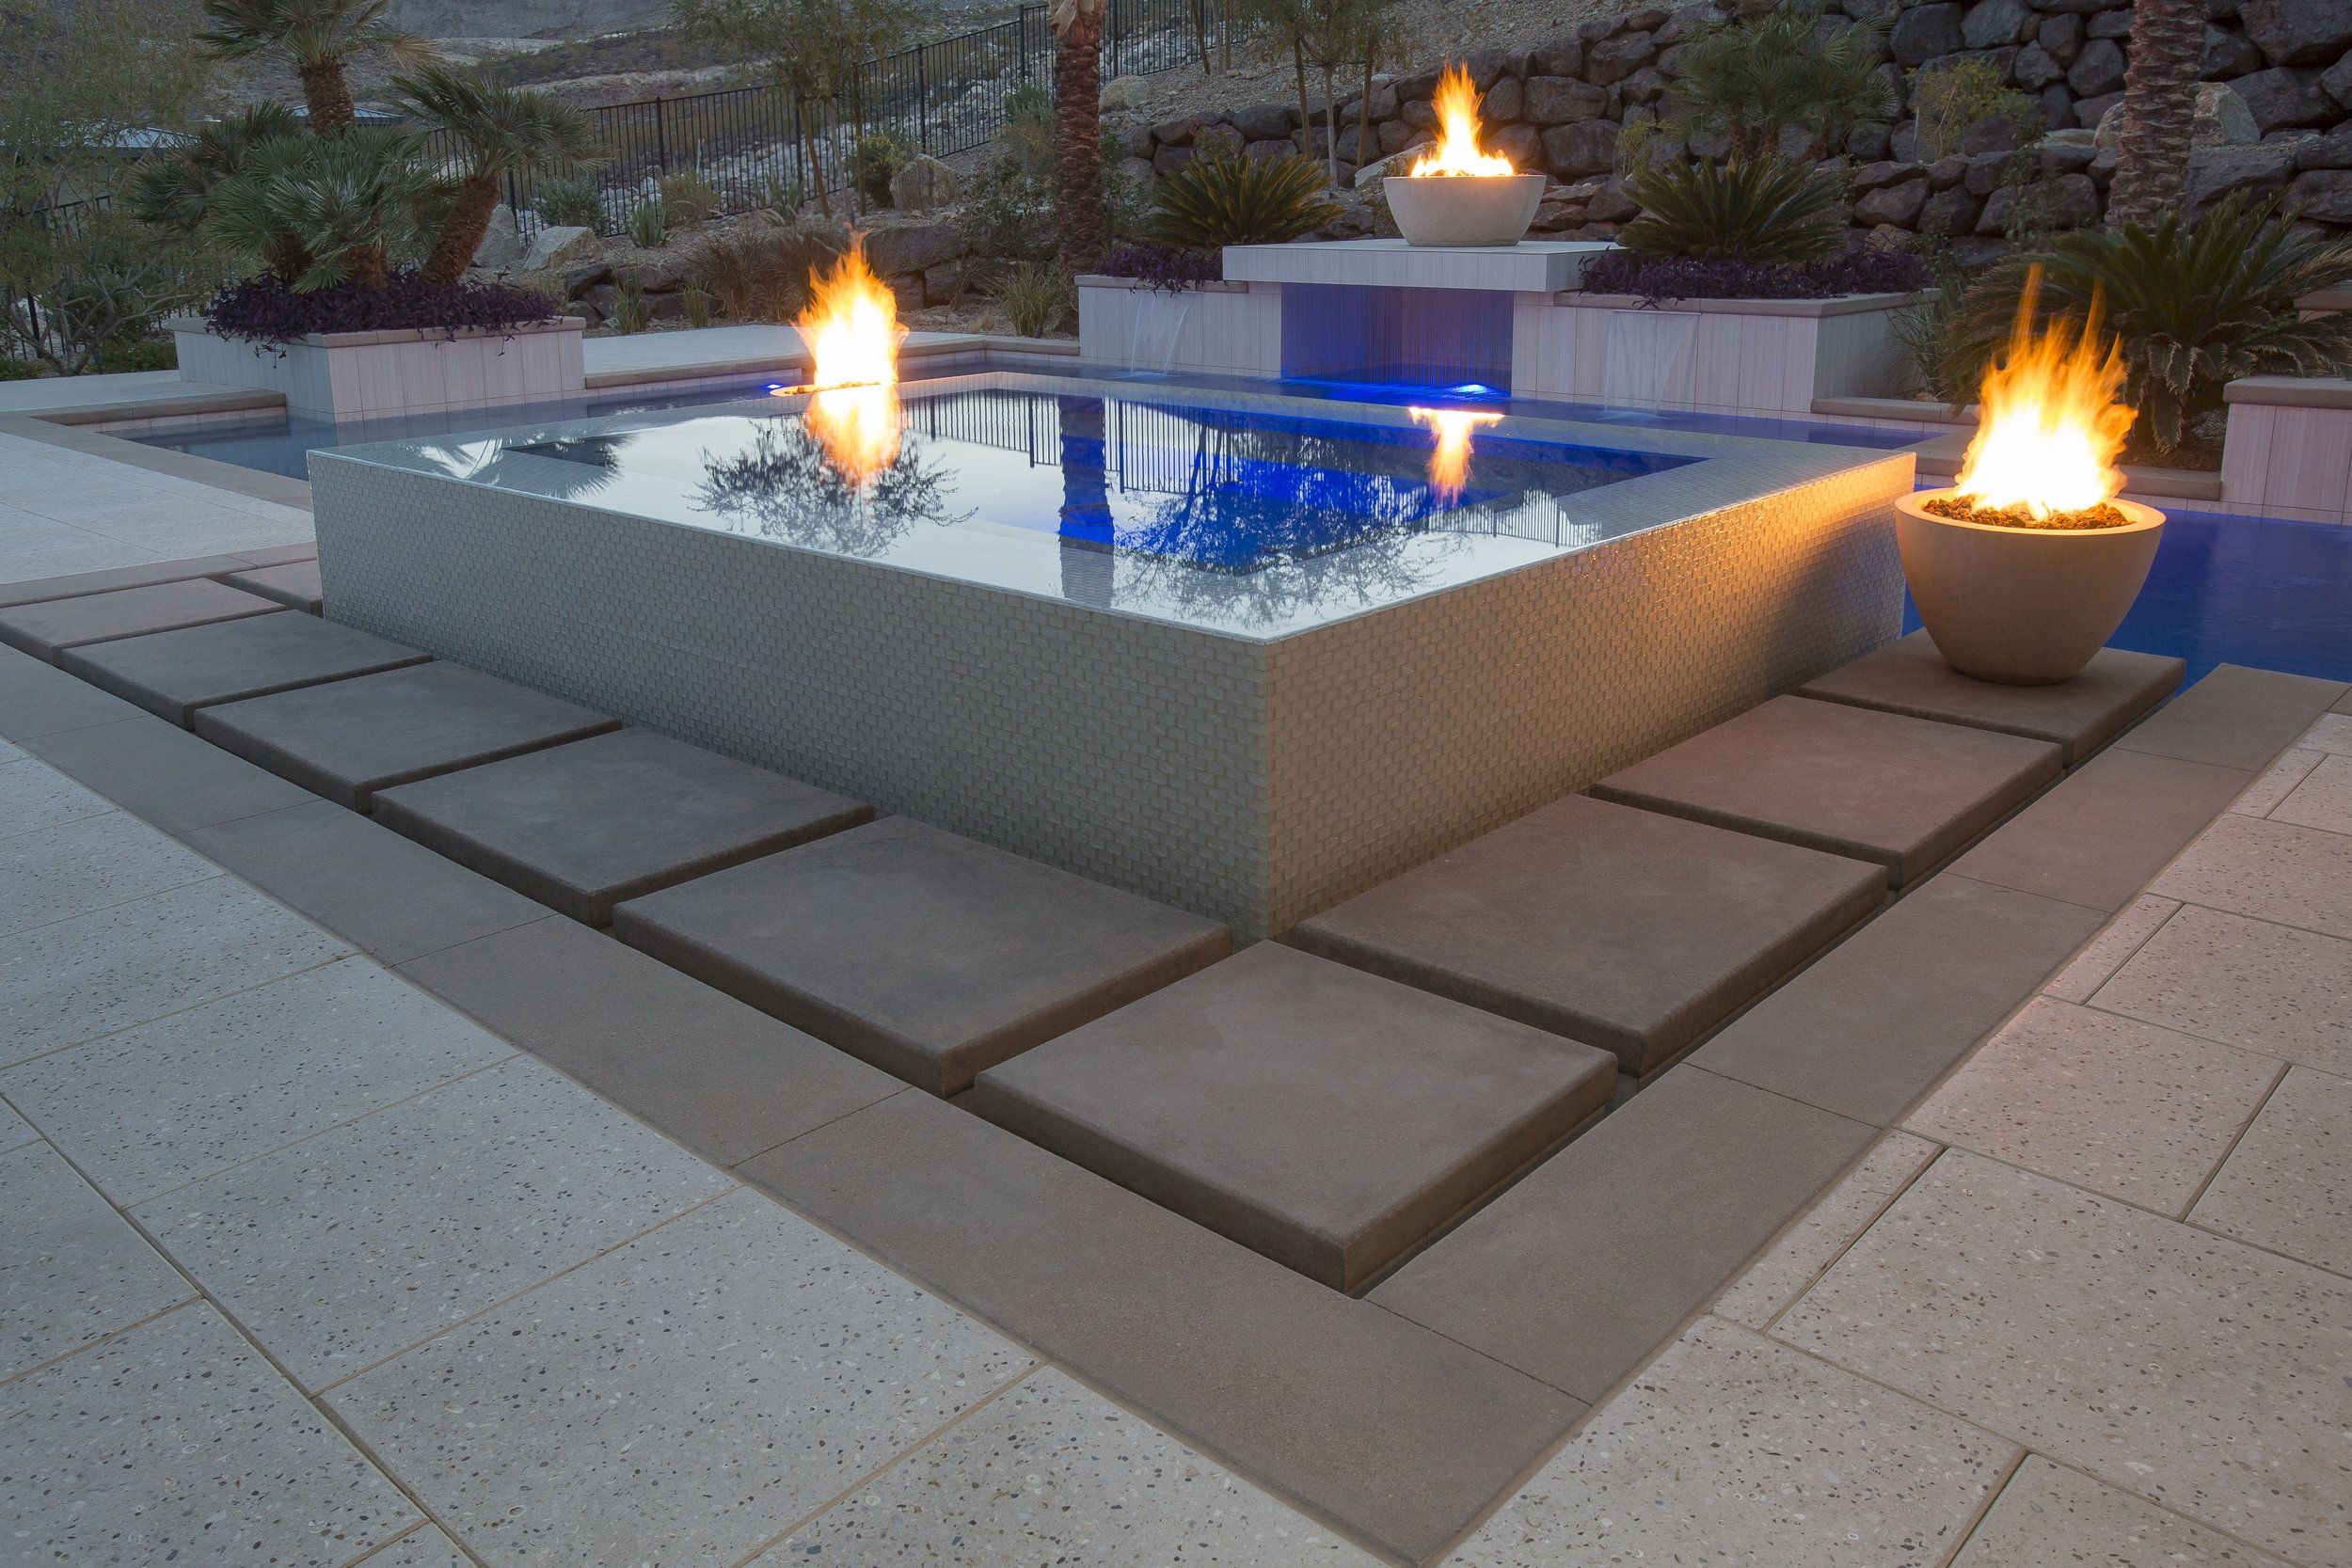 California Pools Las Vegas Nv Info Californiapools 800 282 7665